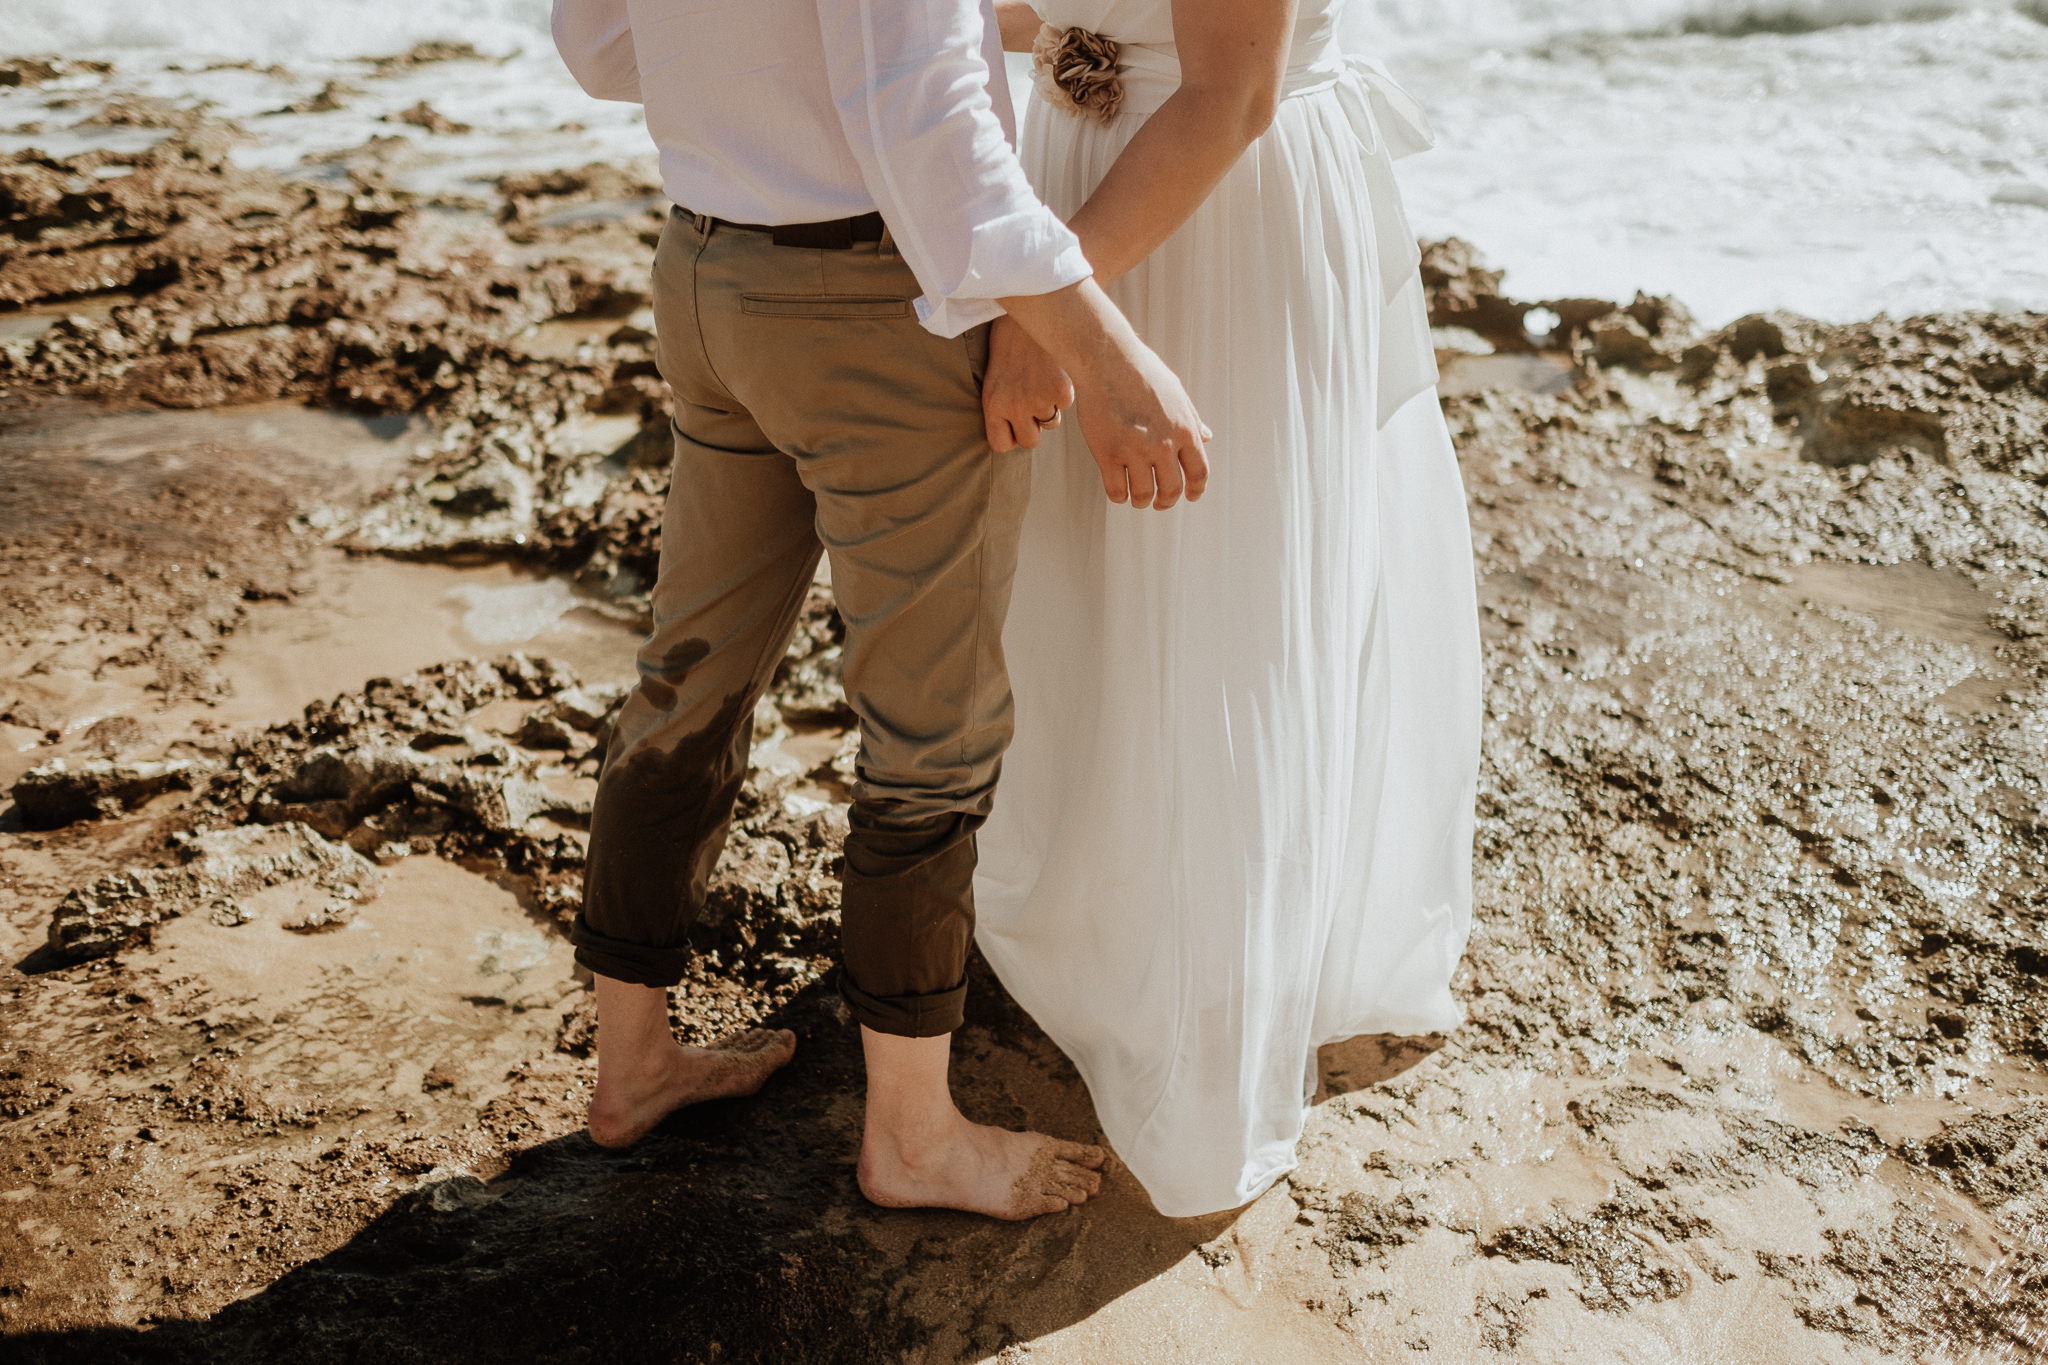 Melbourne Elopement Photography (22 of 27).jpg